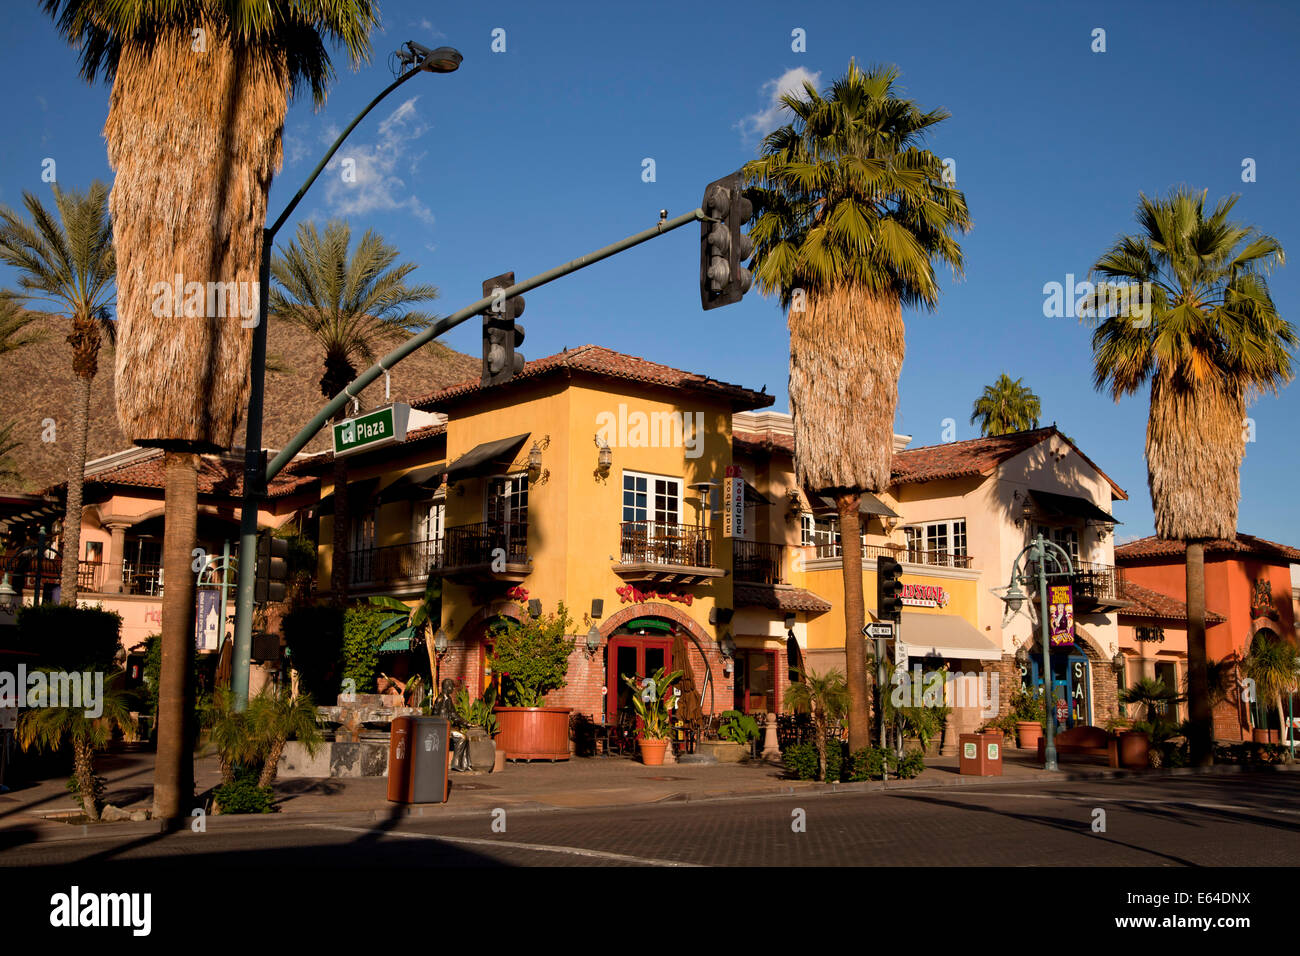 Downtown palm springs on palm canyon drive and la plaza for Shopping in palm springs ca